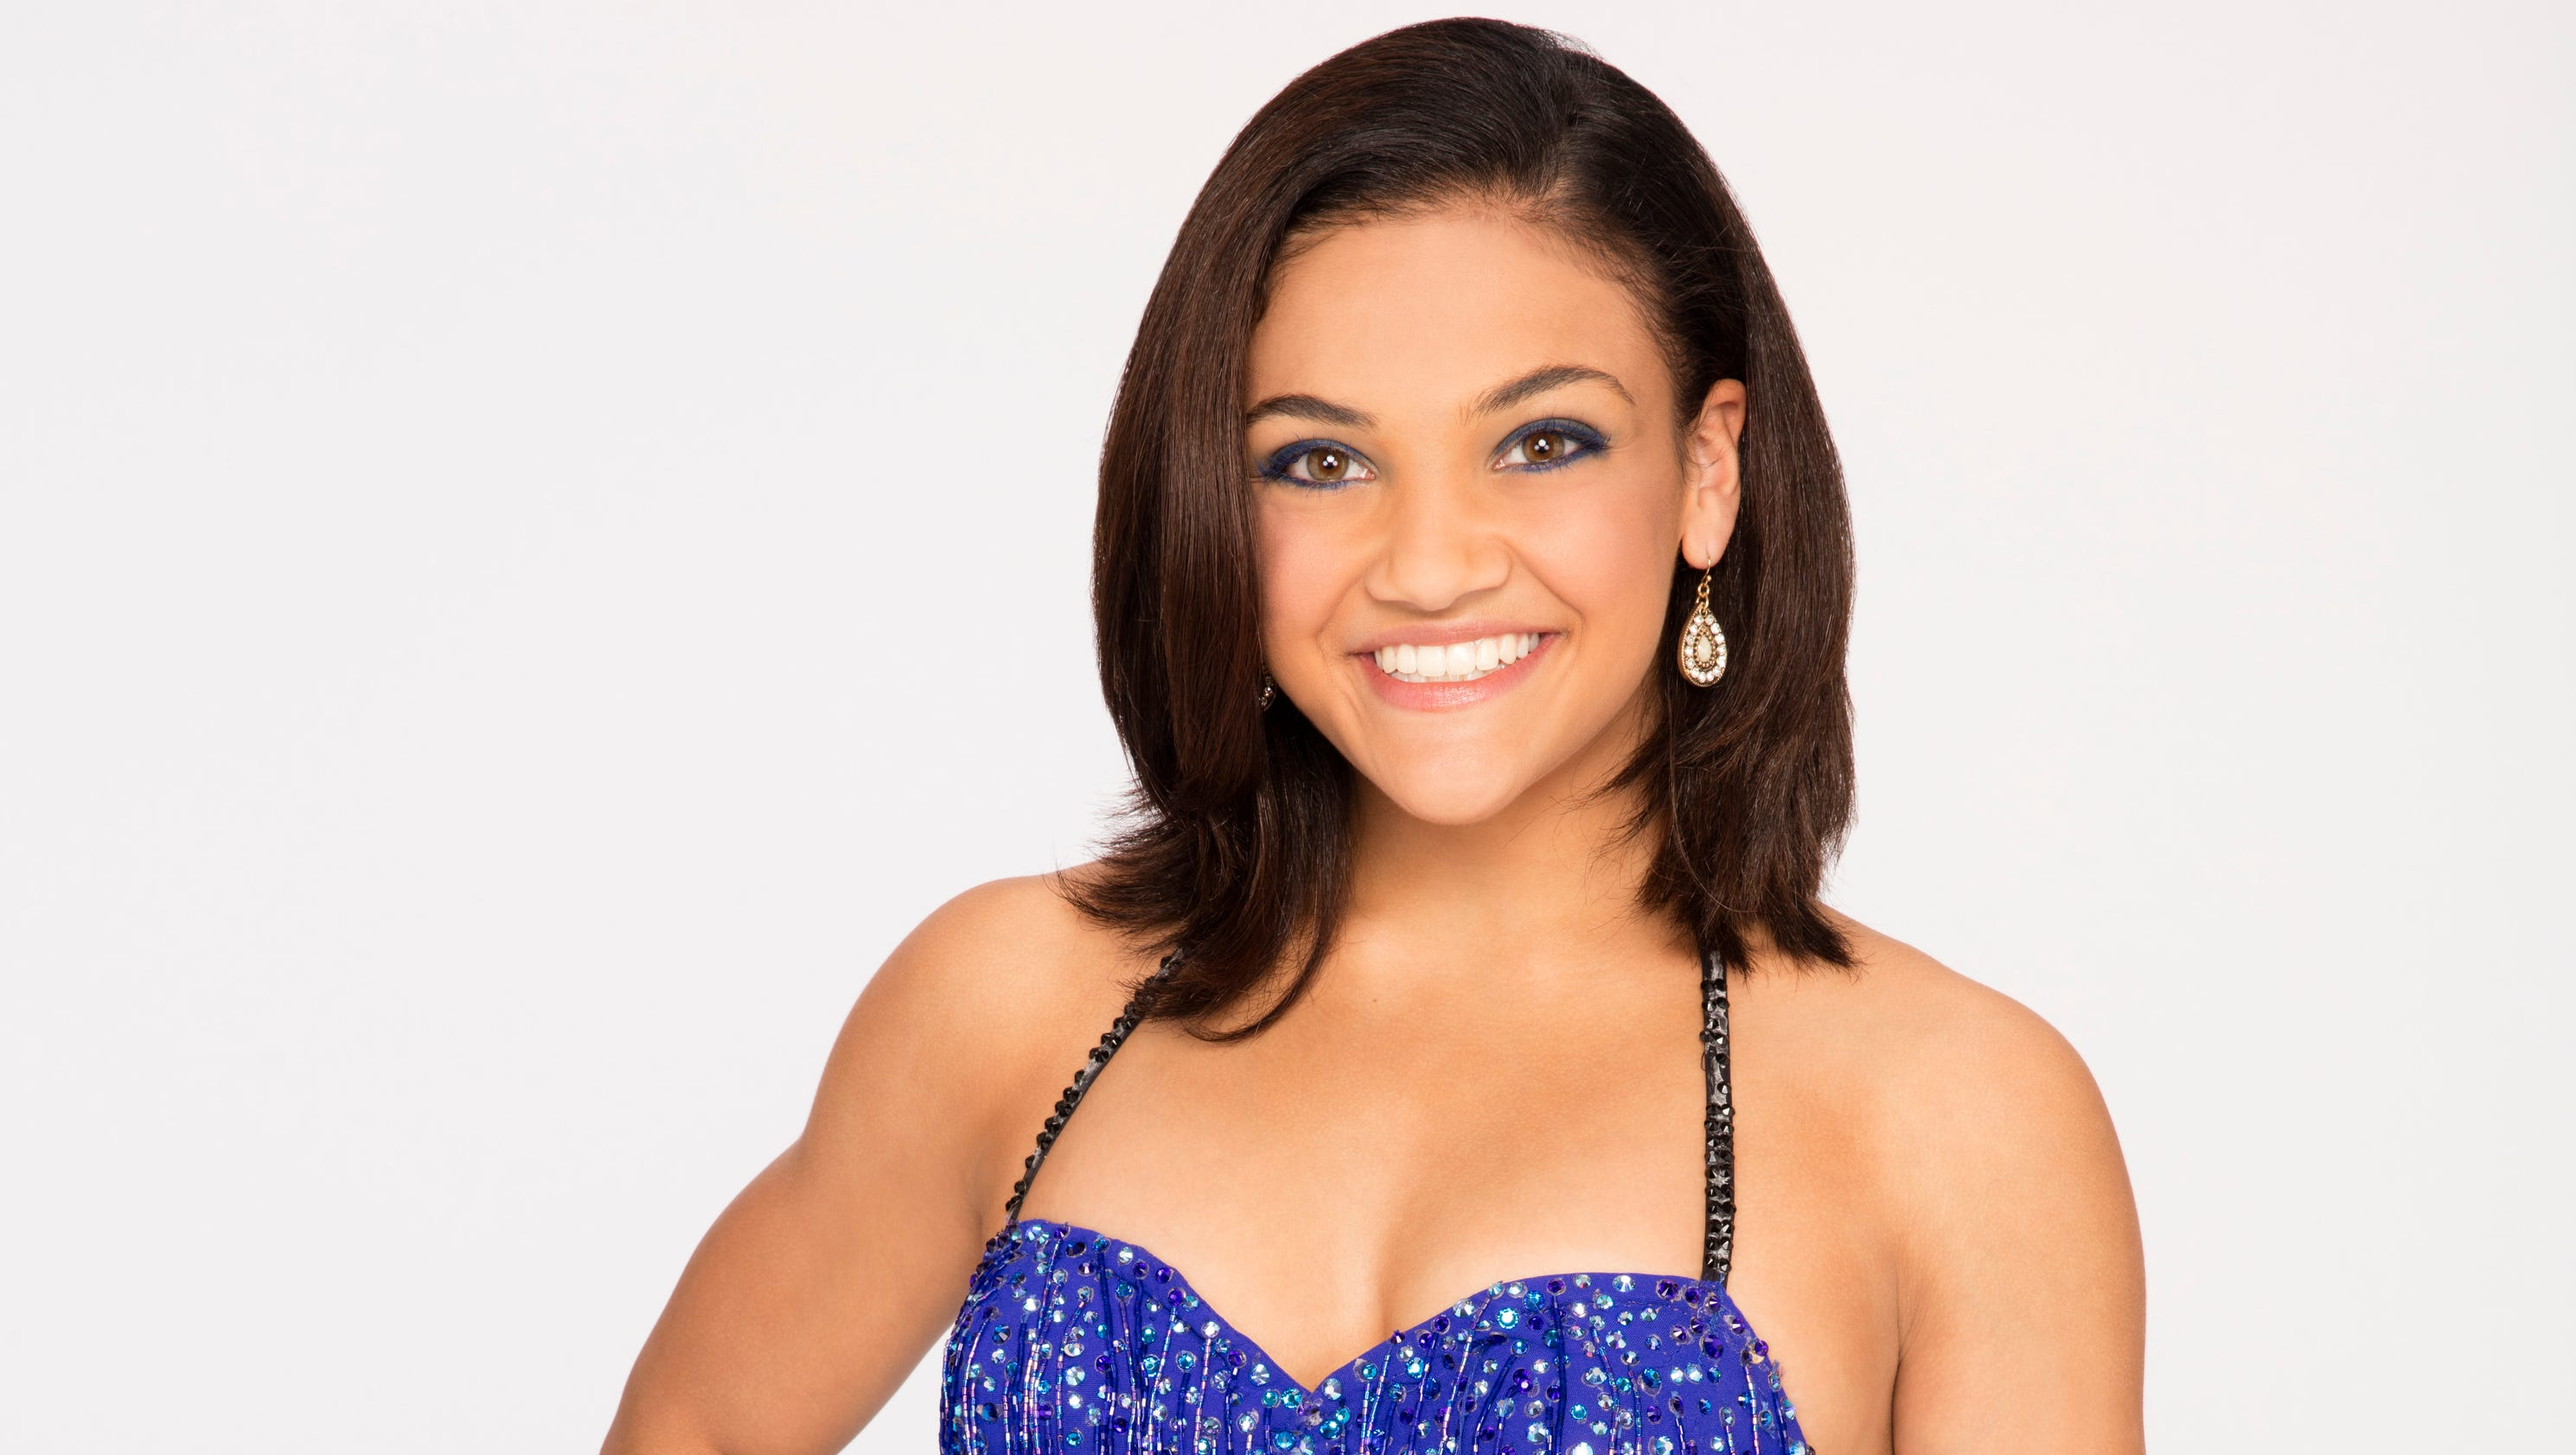 Laurie Hernandez Back In NJ For Olympics Show